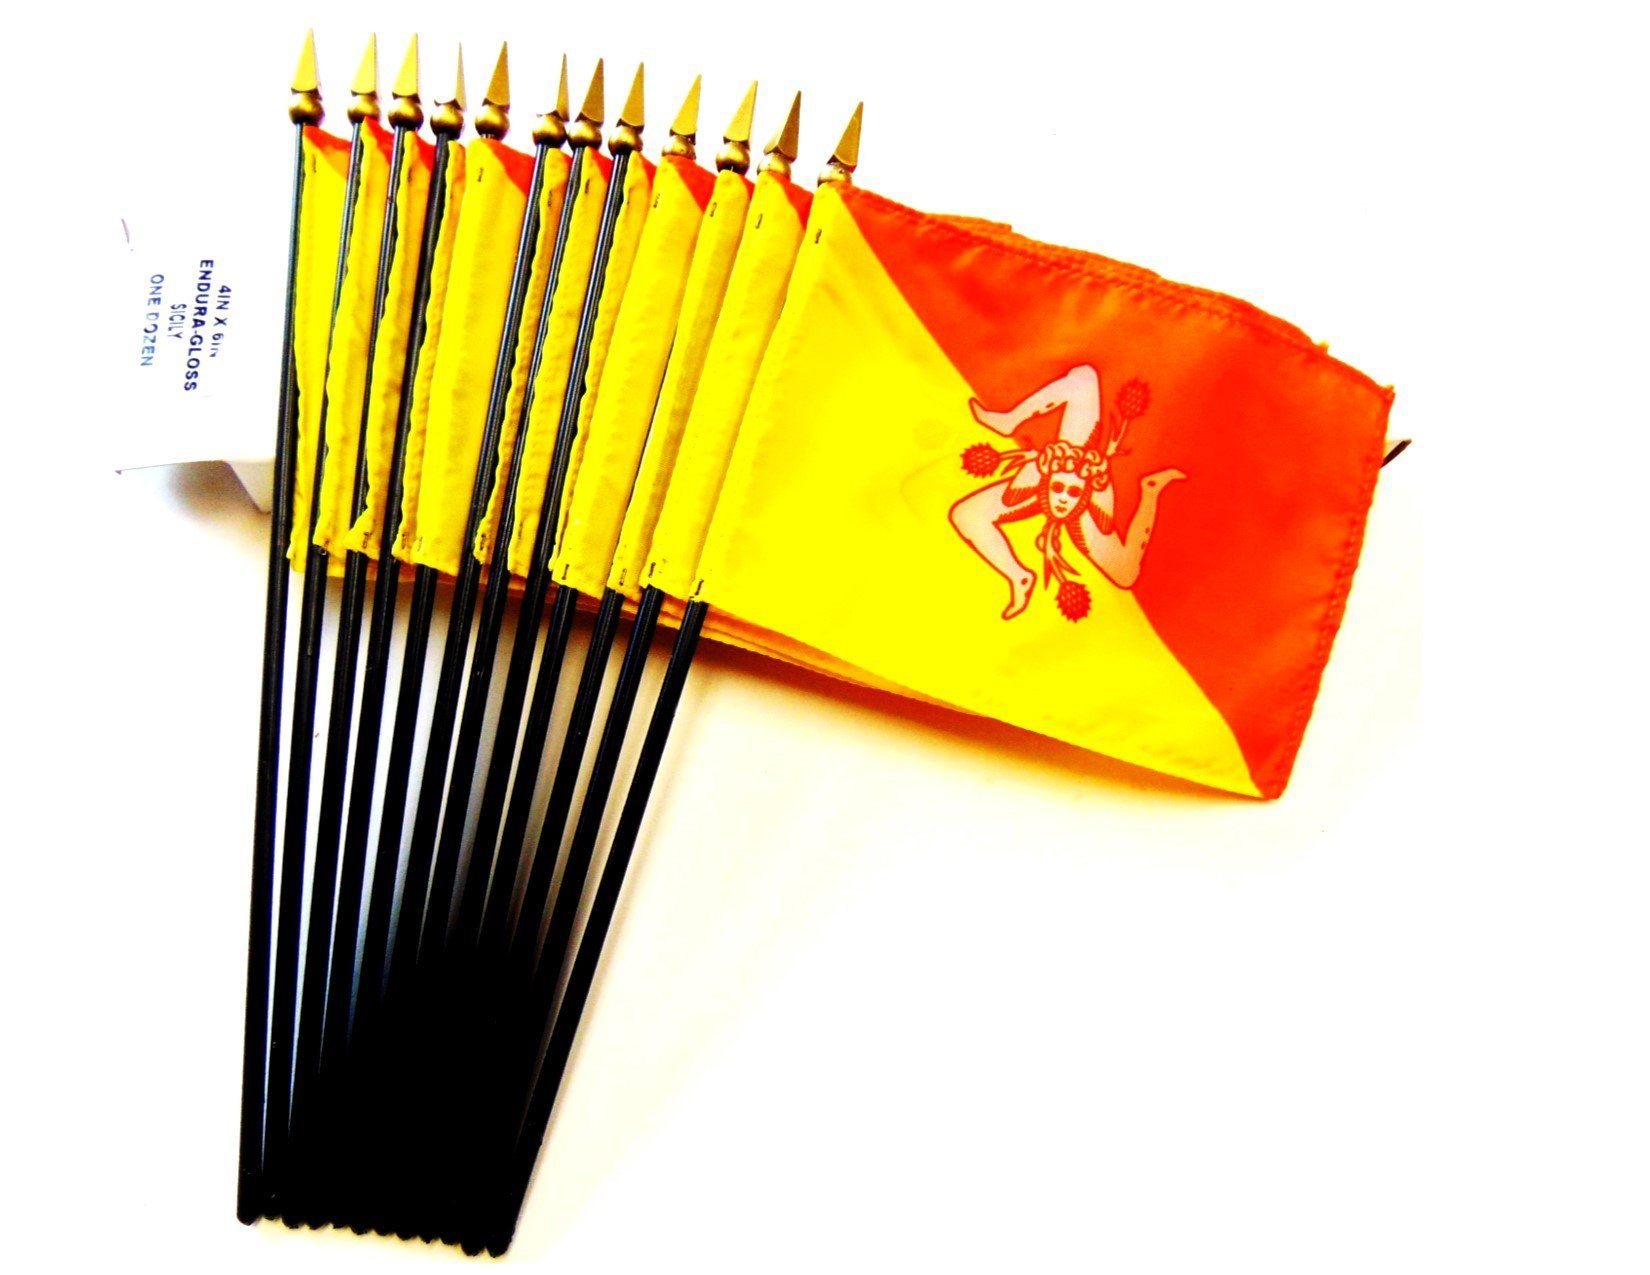 MADE IN USA!! Box of 12 Sicily 4''x6'' Miniature Desk & Table Flags; 12 American Made Small Mini Sicilian Flags in a Custom Made Cardboard Box Specifically Made for These Flags